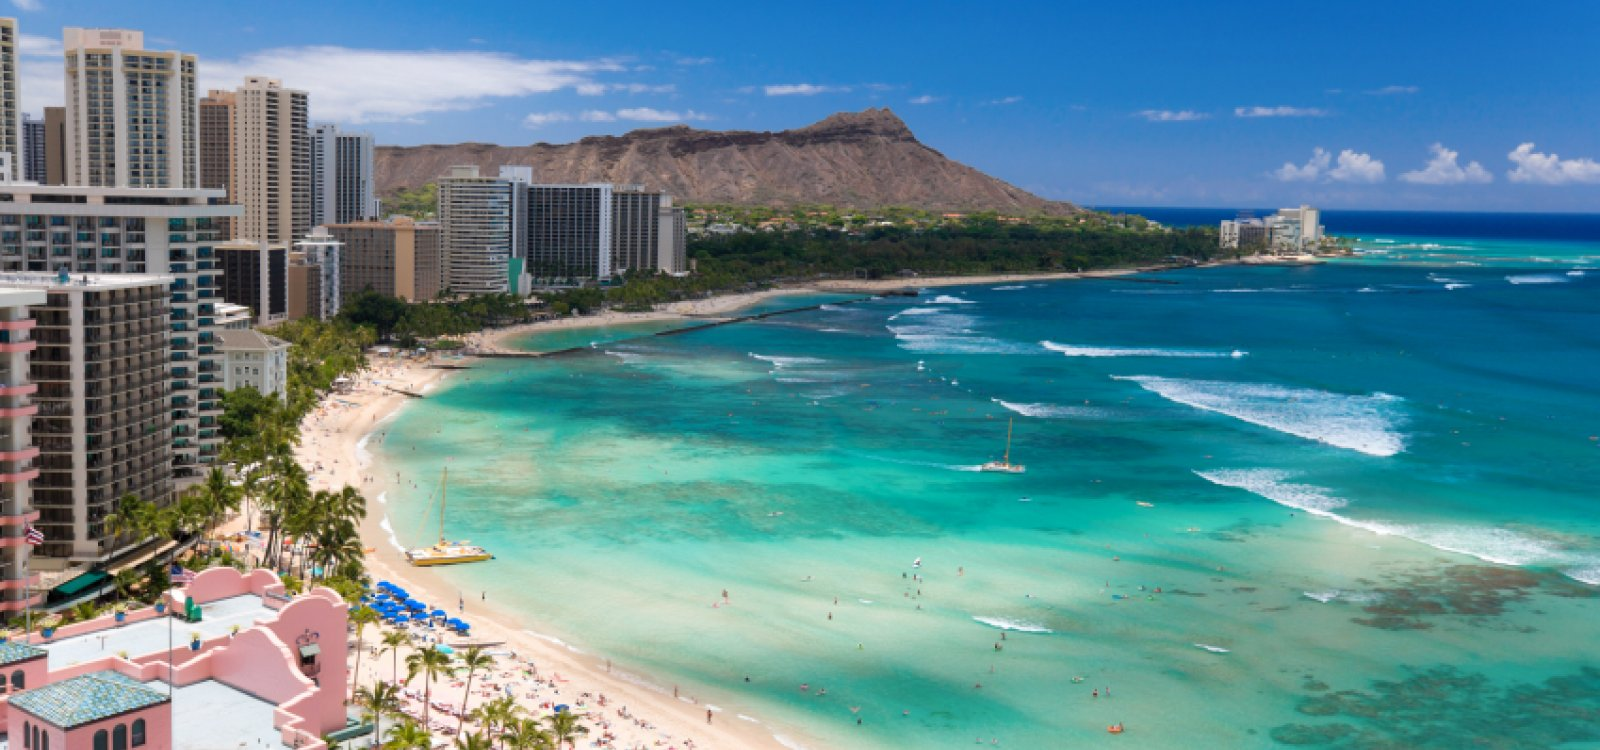 The Best Hawaiian Island to Visit The Best Hawaiian Island to Visit Photo Gallery